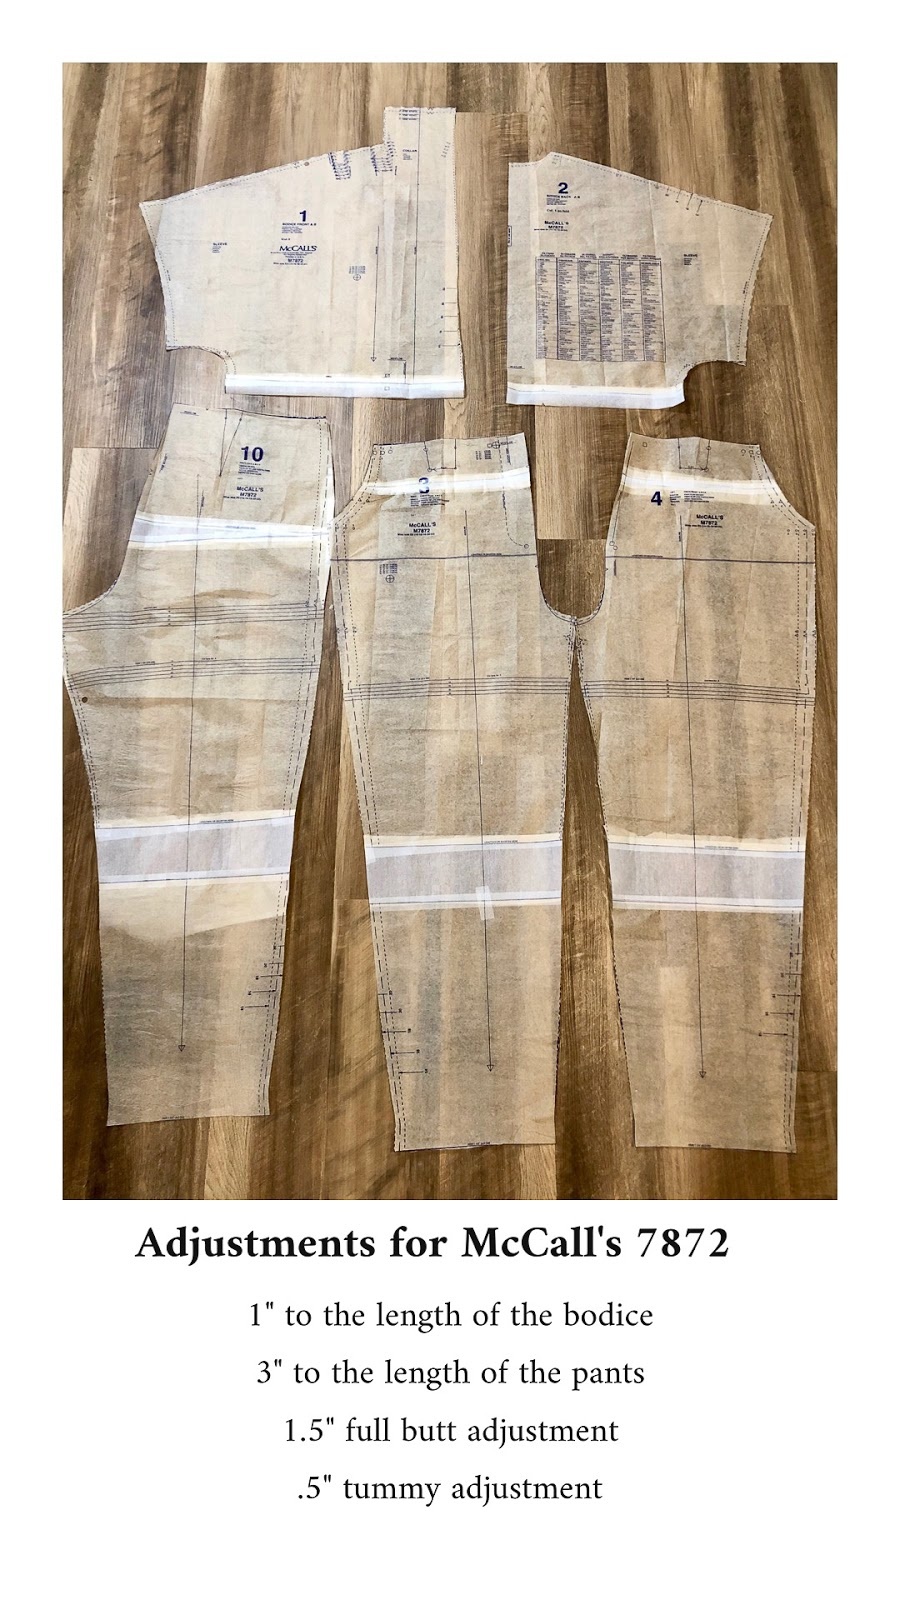 McCall's 7872 - Pattern Alterations - Erica Bunker DIY Style!